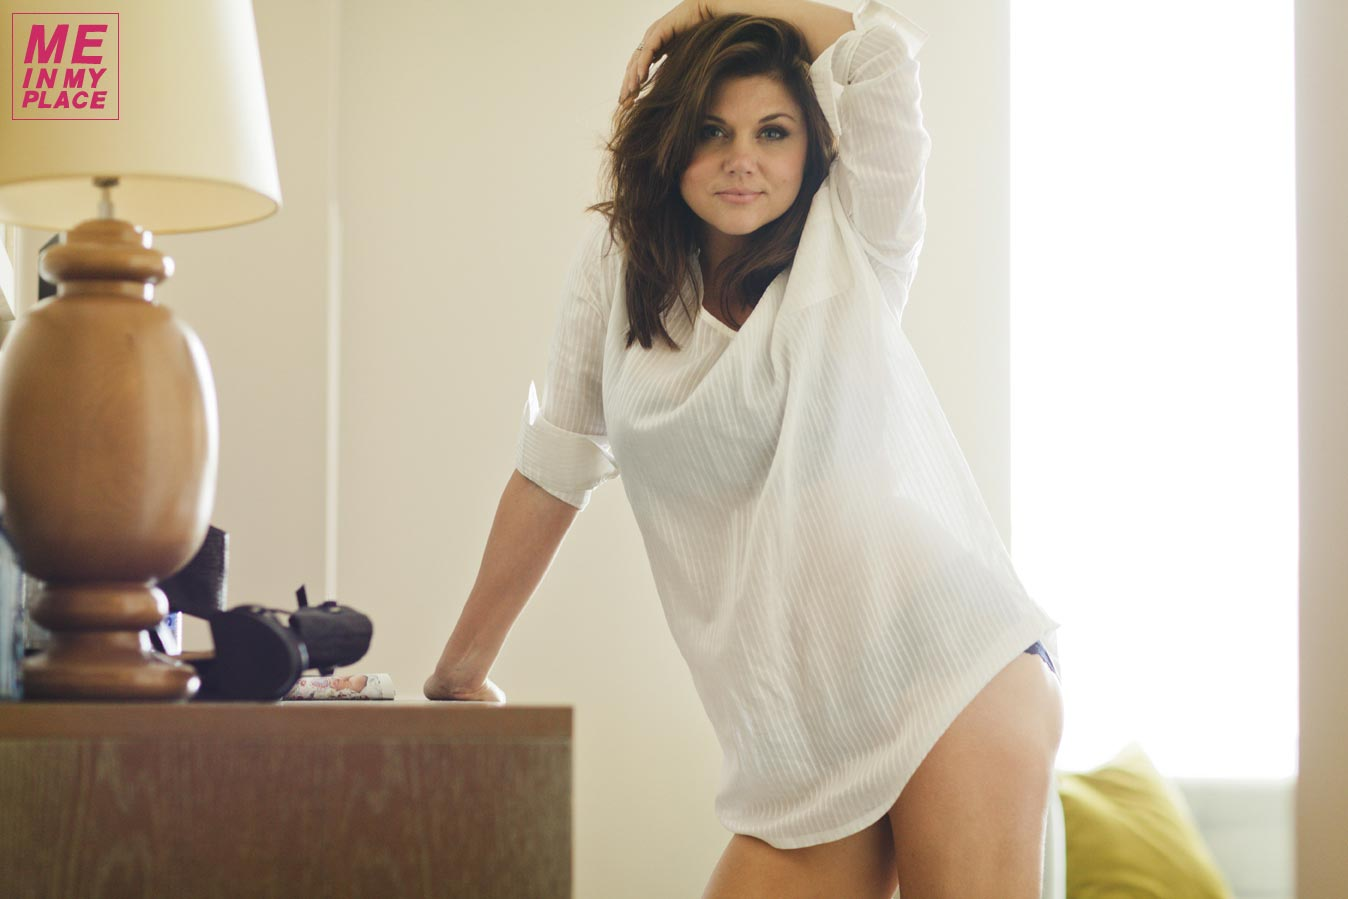 Back to post Tiffani Thiessen     Me In My Place Photoshoot 2012Tiffani Thiessen 2013 Me In My Place